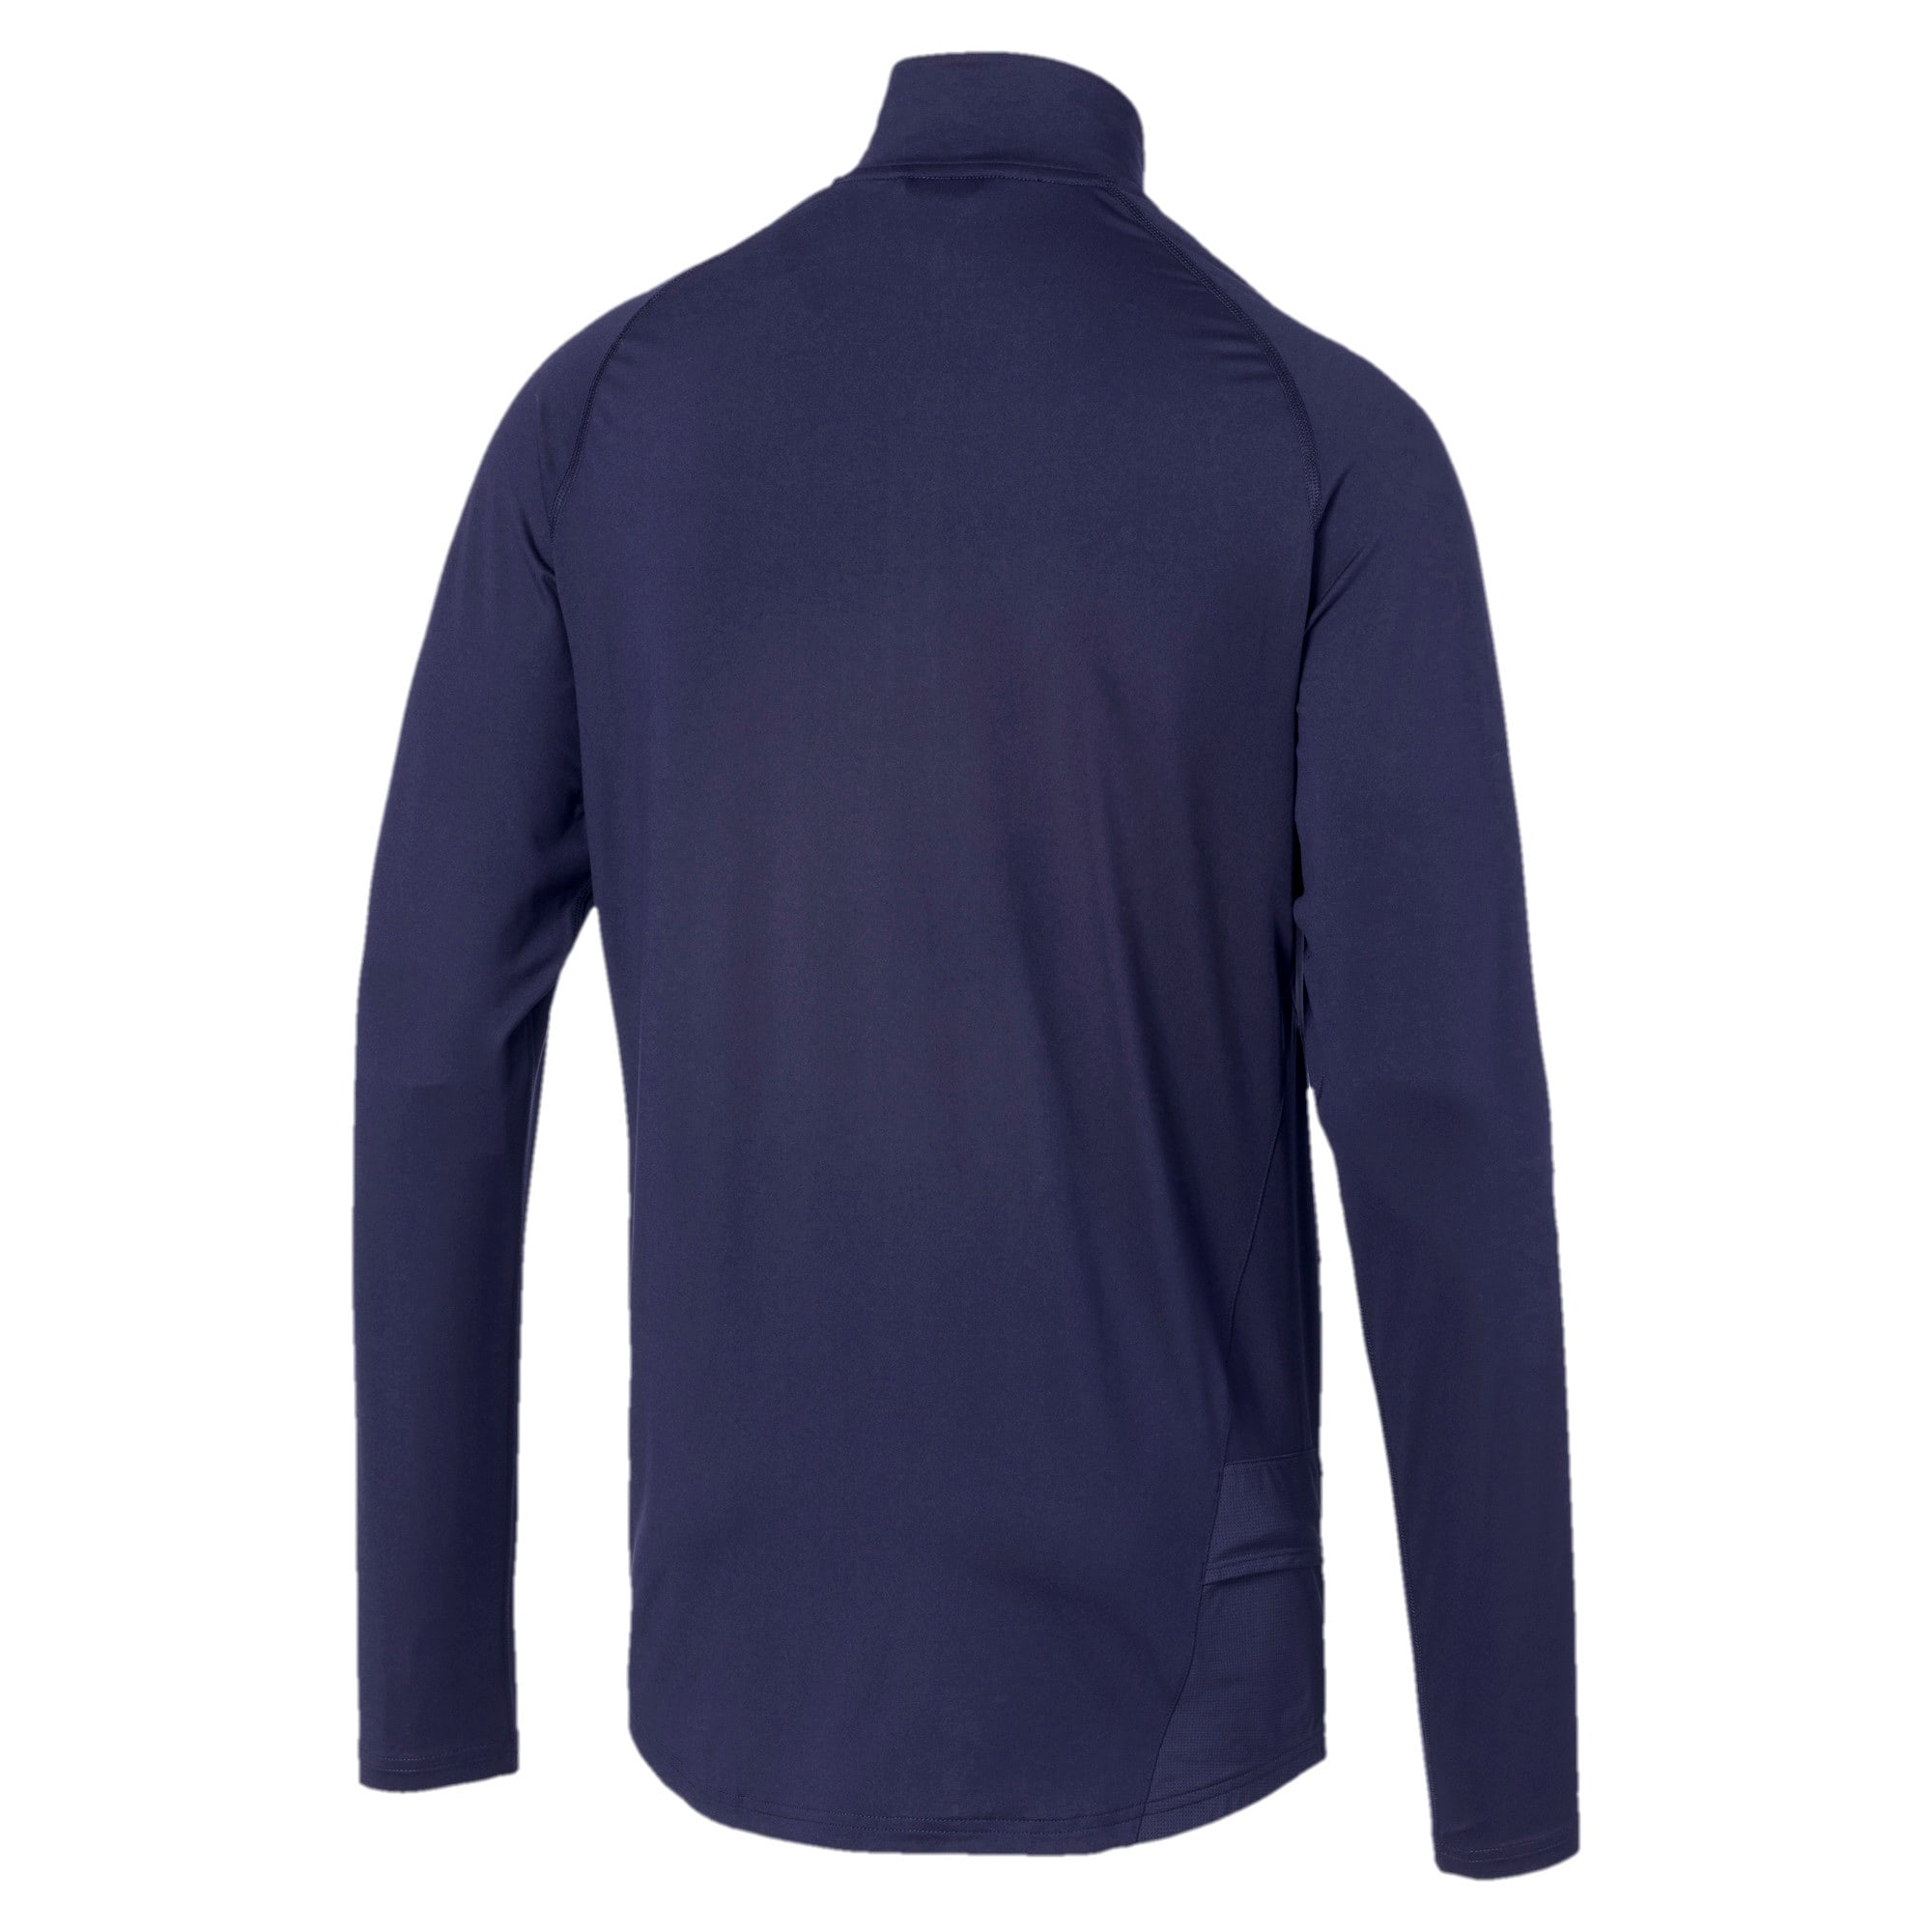 Thumbnail 5 of IGNITE Half Zip Men's Running Top, Peacoat, medium